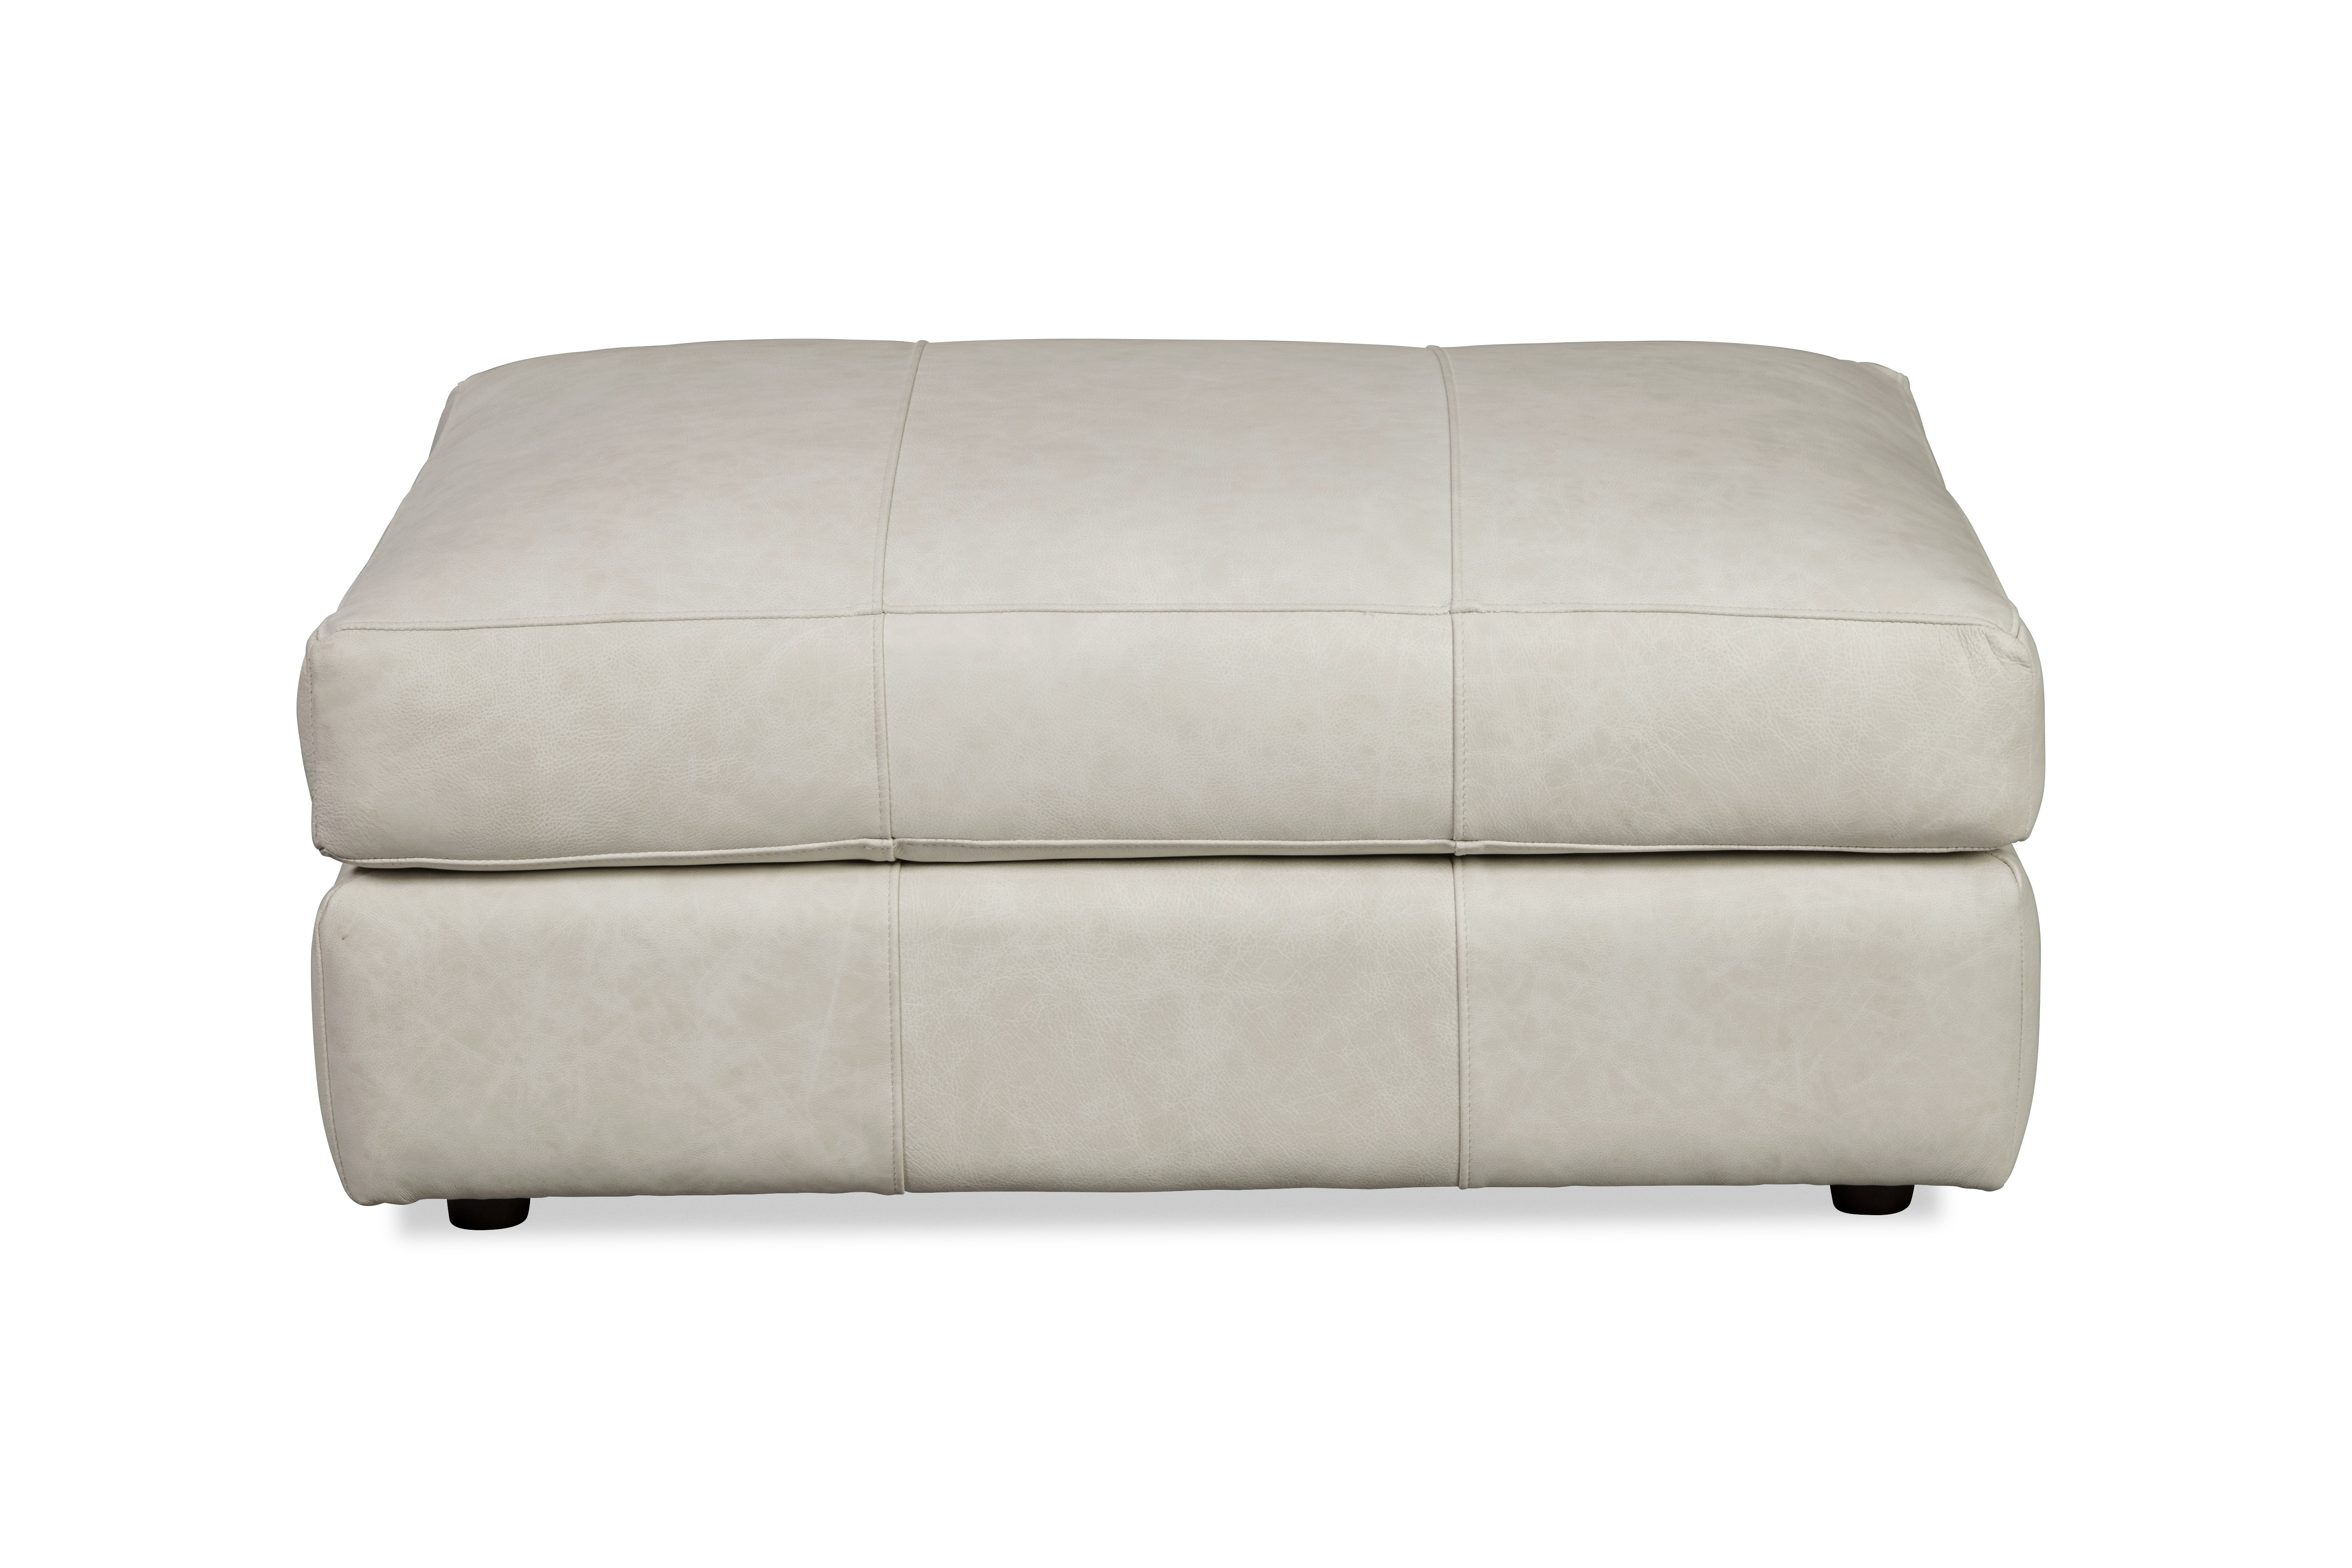 L700150BD Ottoman by Craftmaster at Esprit Decor Home Furnishings